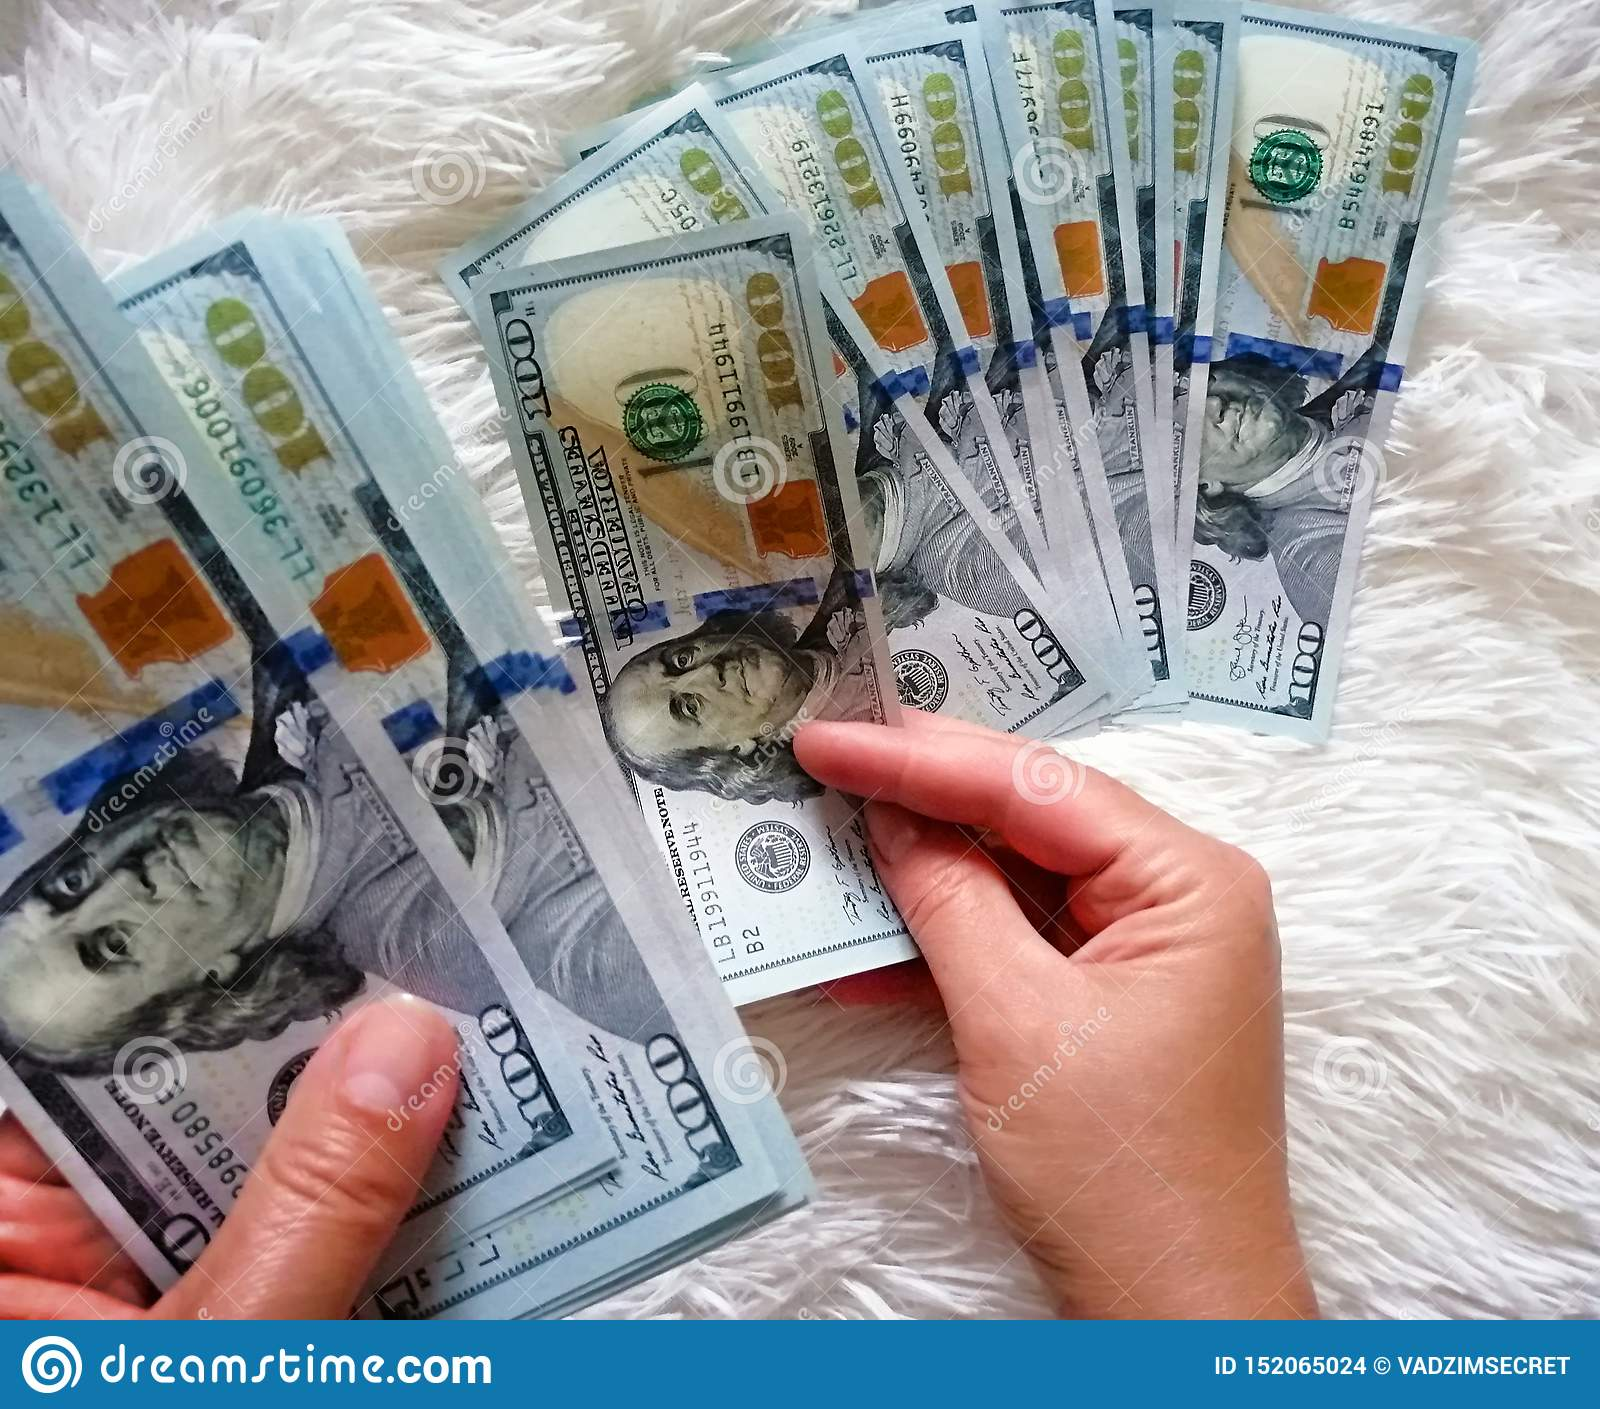 The girl is holding the money in her hands. One hundred dollars cash